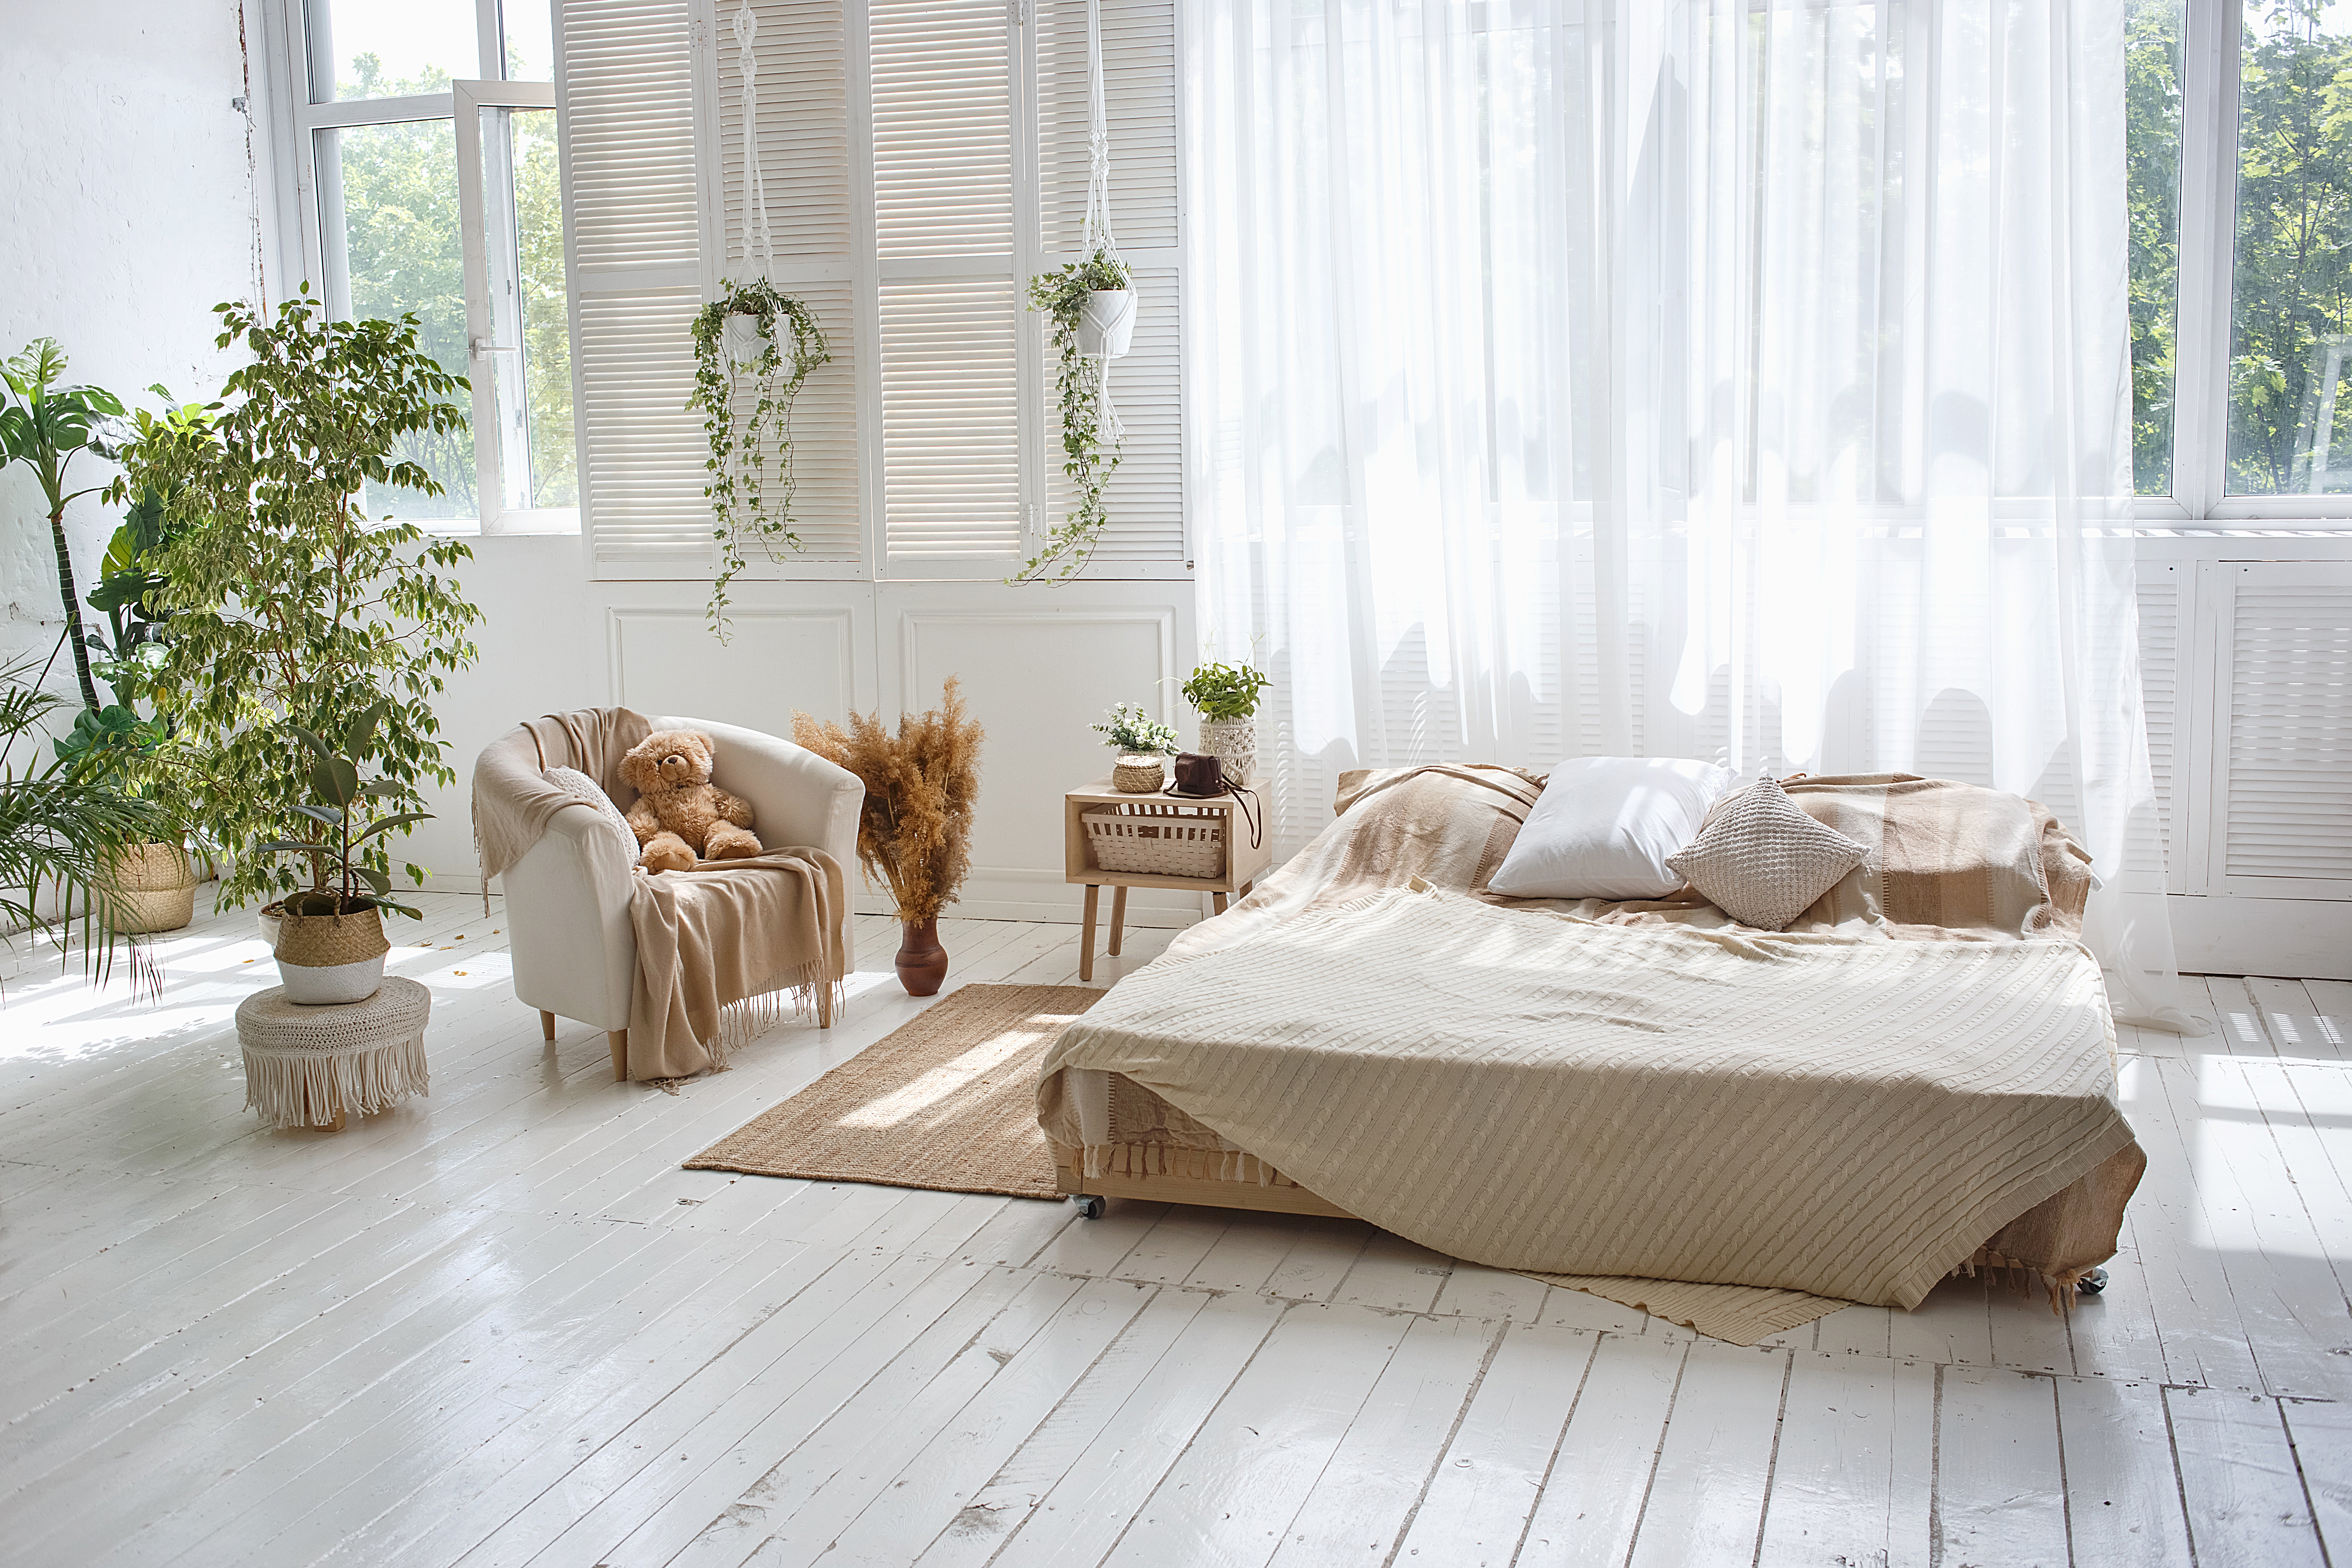 Stylish bright loft cozy room with double bed, armchair, green plants, curtains, white brick walls and wooden floor.